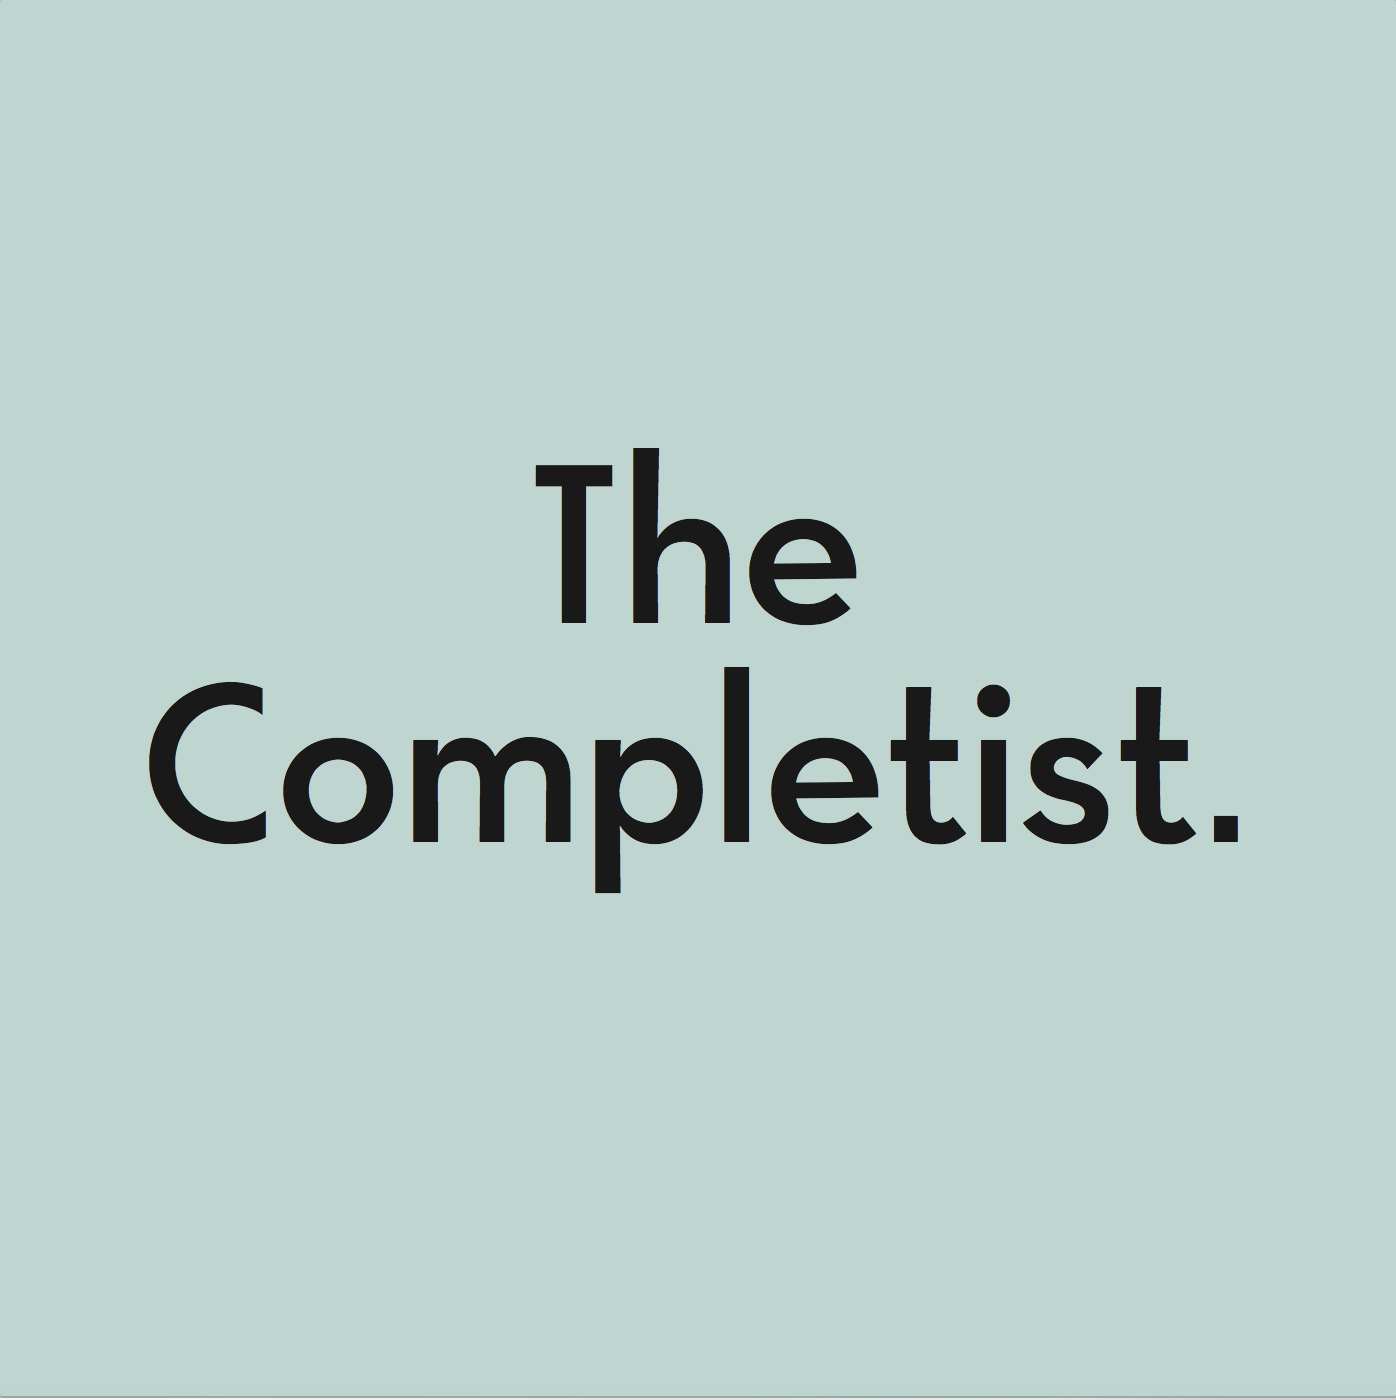 The Completist by TheCompletistLondon on Etsy